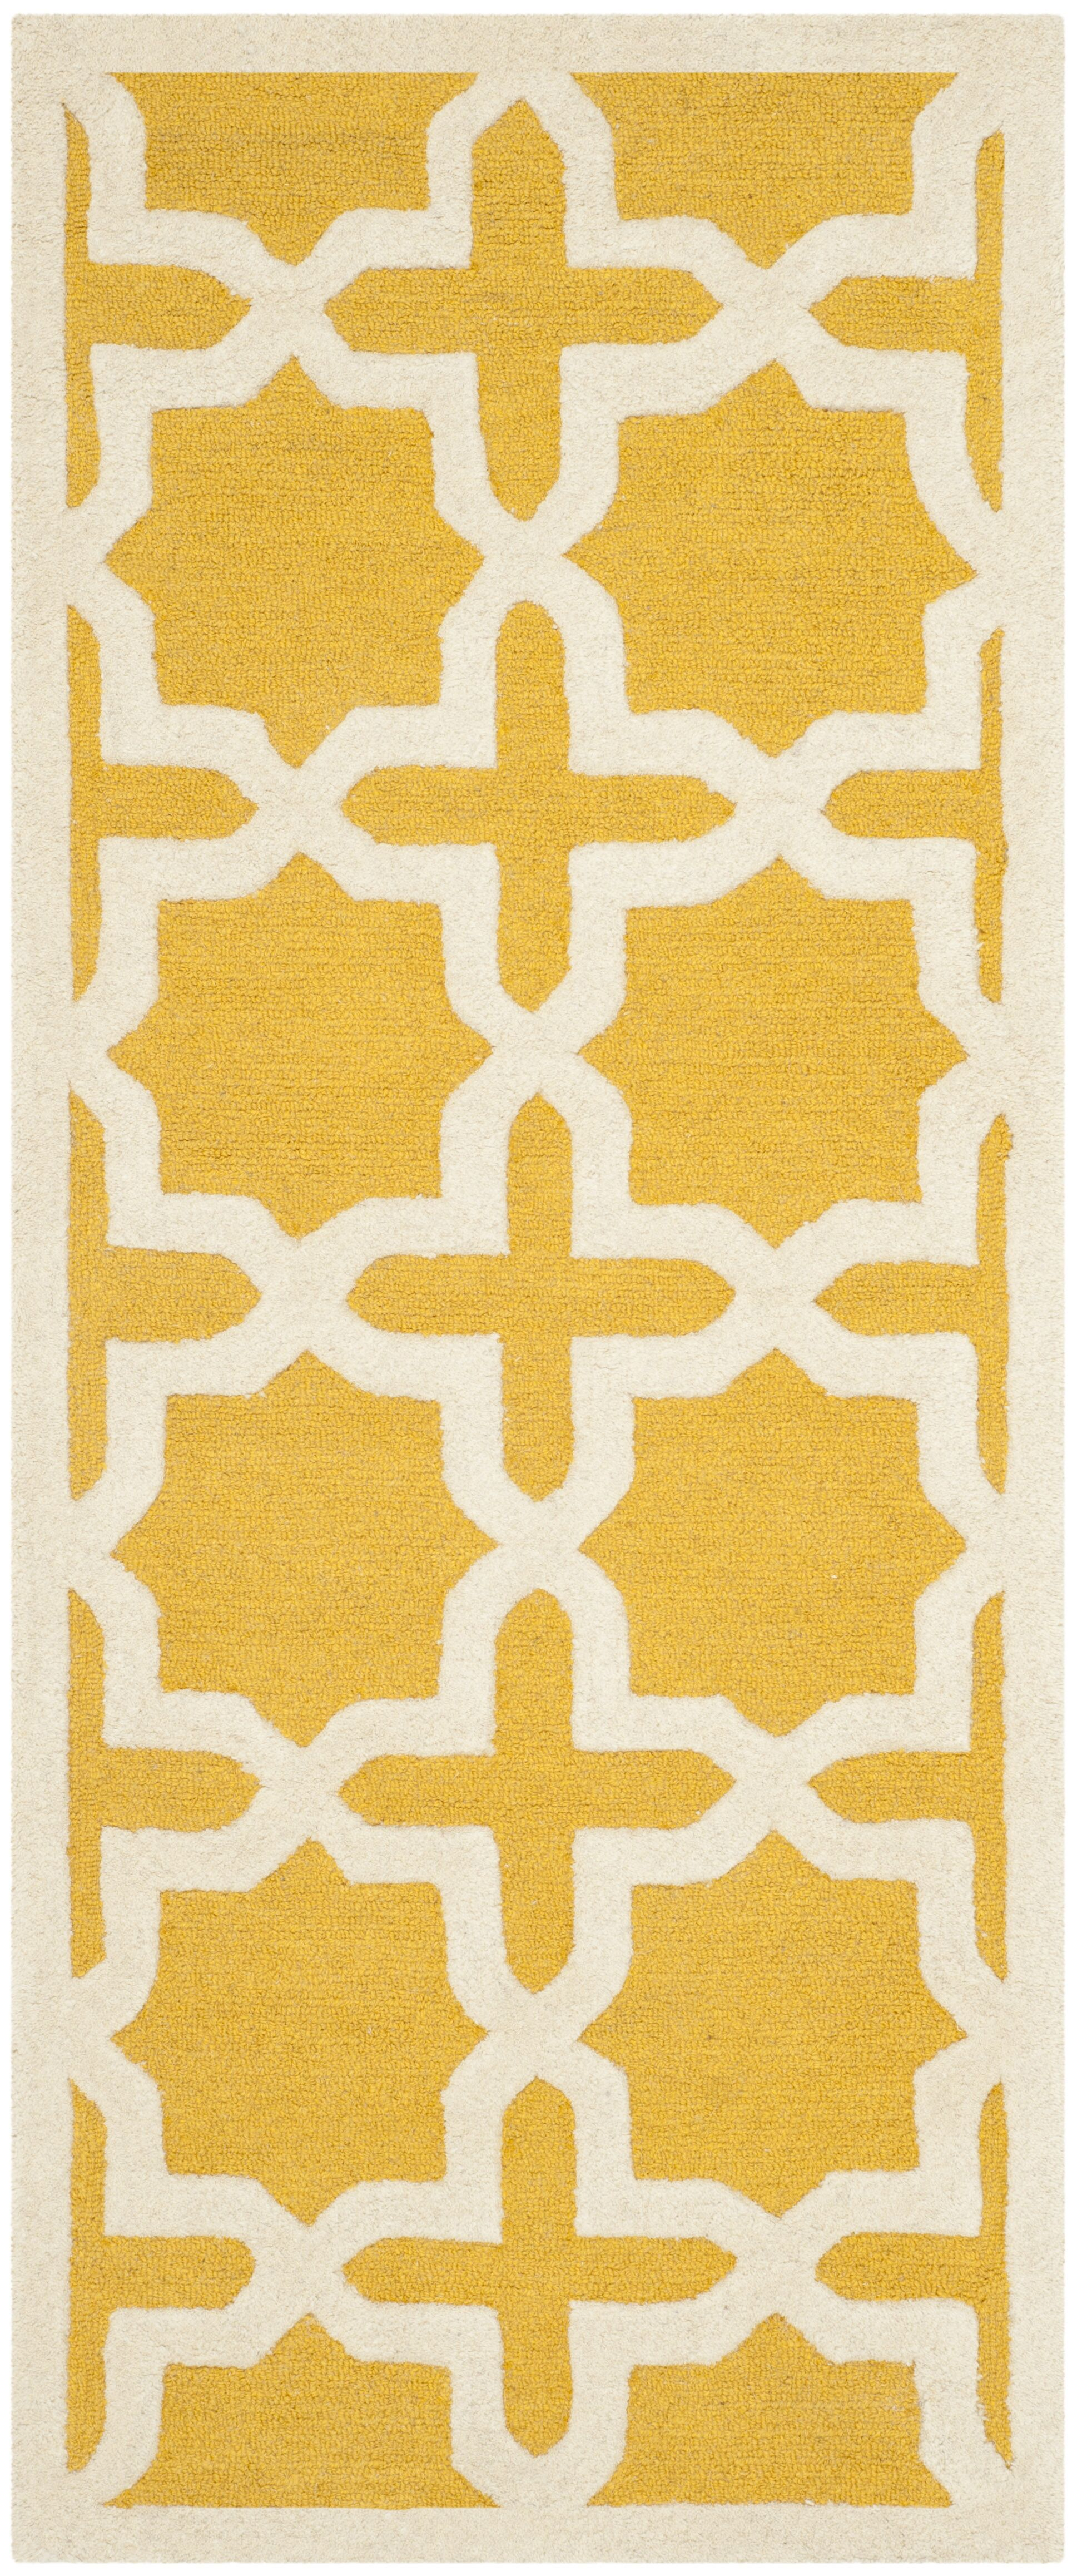 Martins Yellow Area Rug Rug Size: Runner 2'6